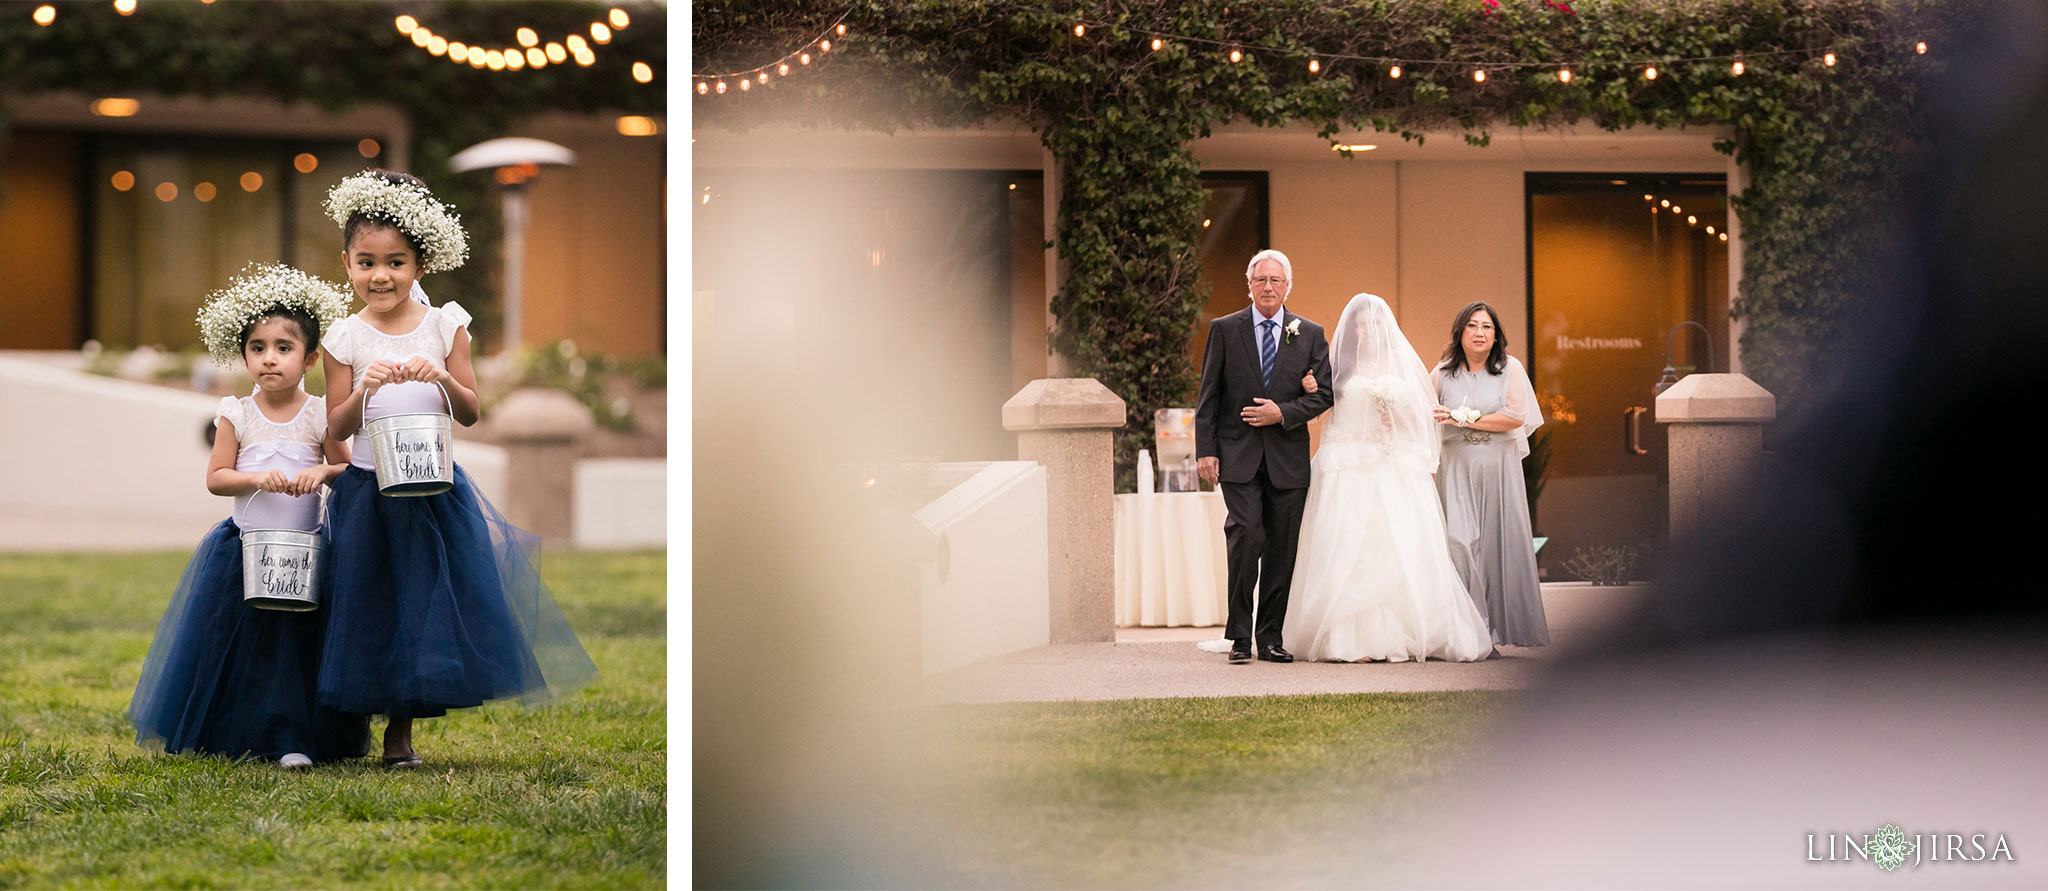 20 turnip rose promenade orange county wedding ceremony photography